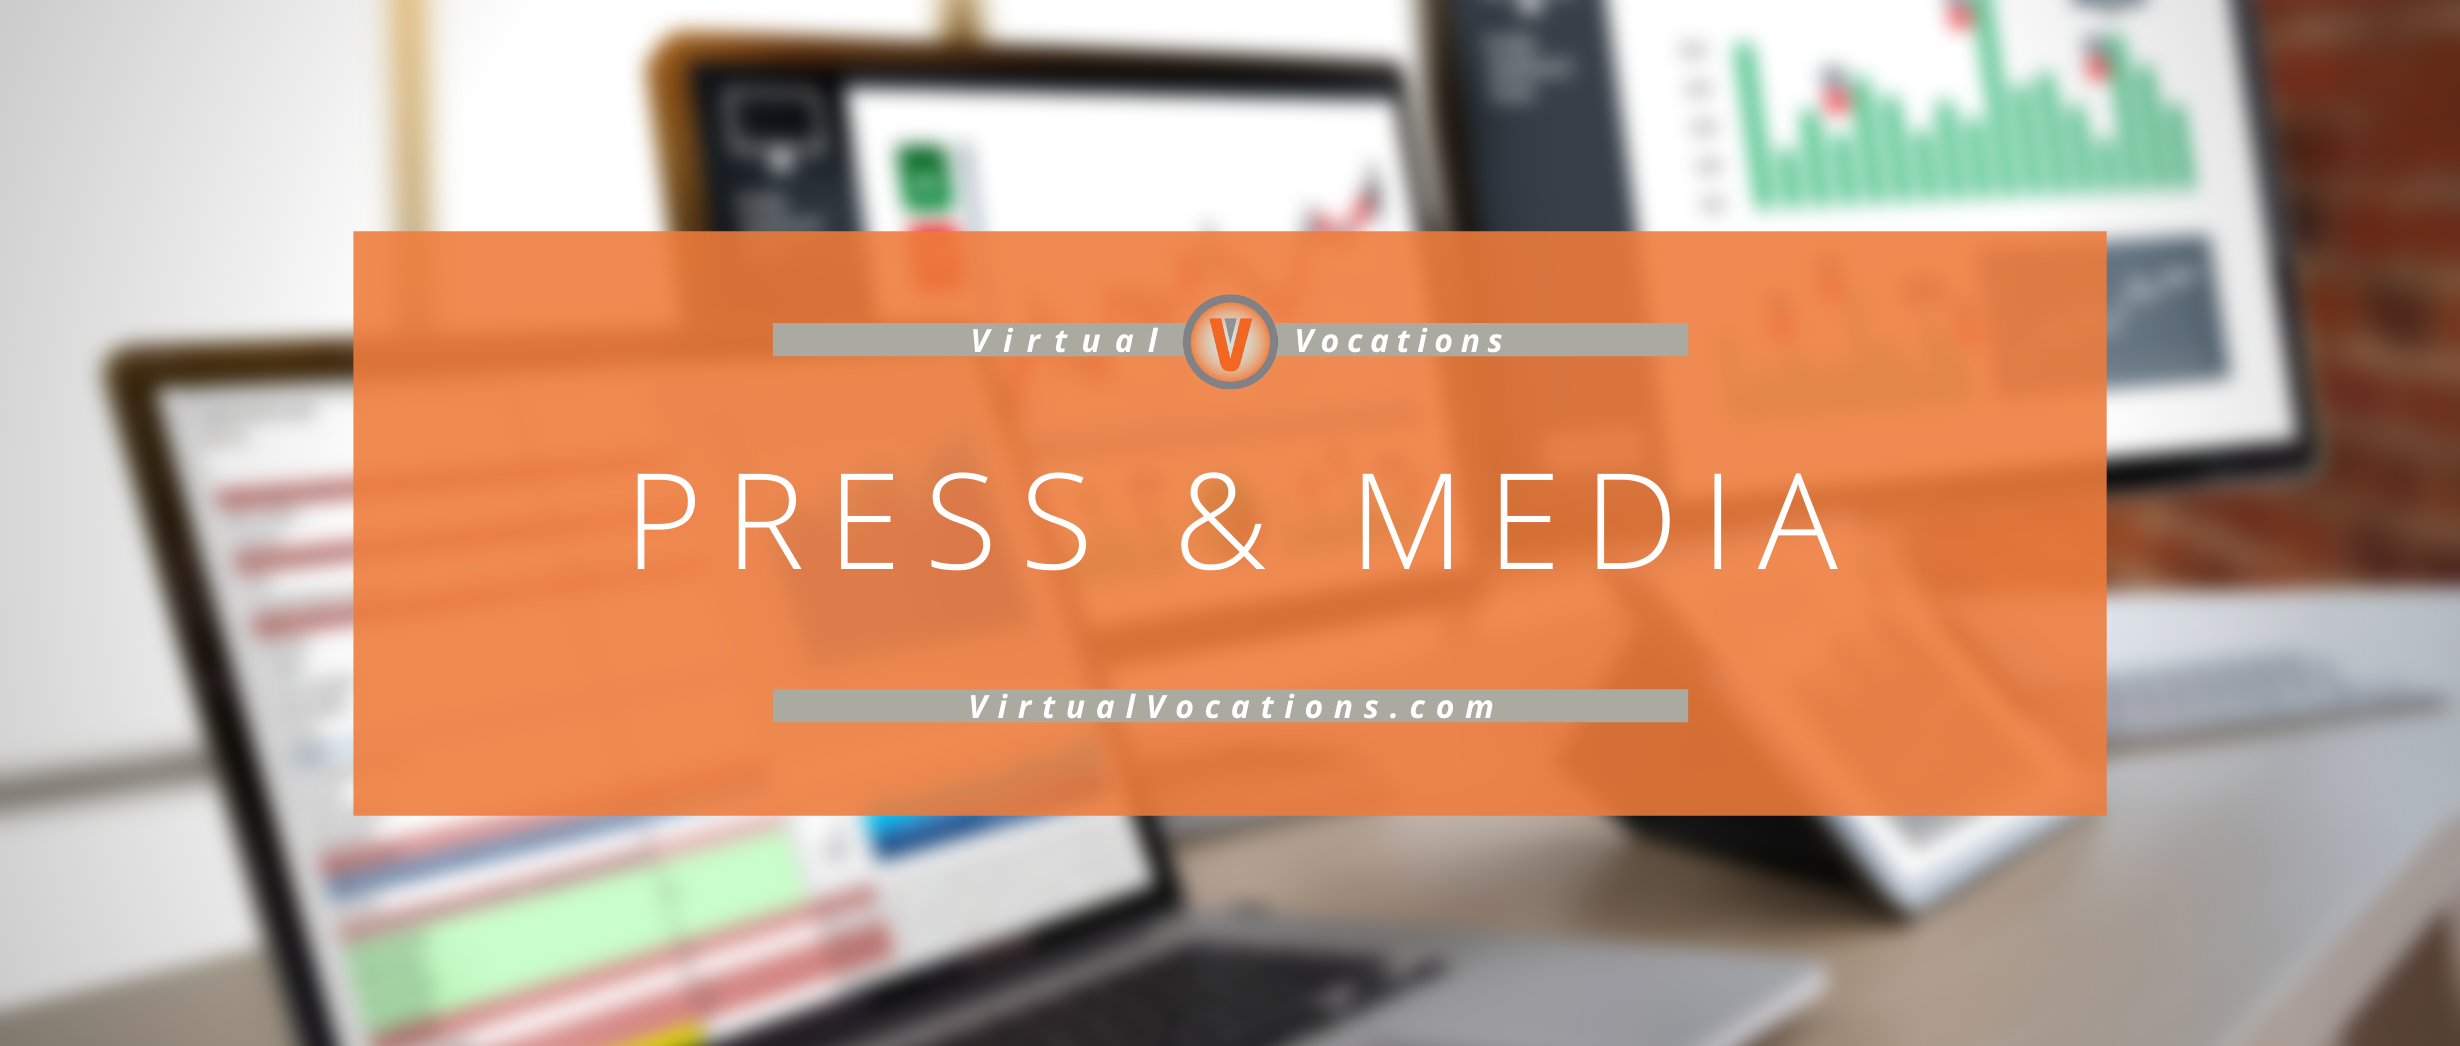 Virtual Vocations Press and Media